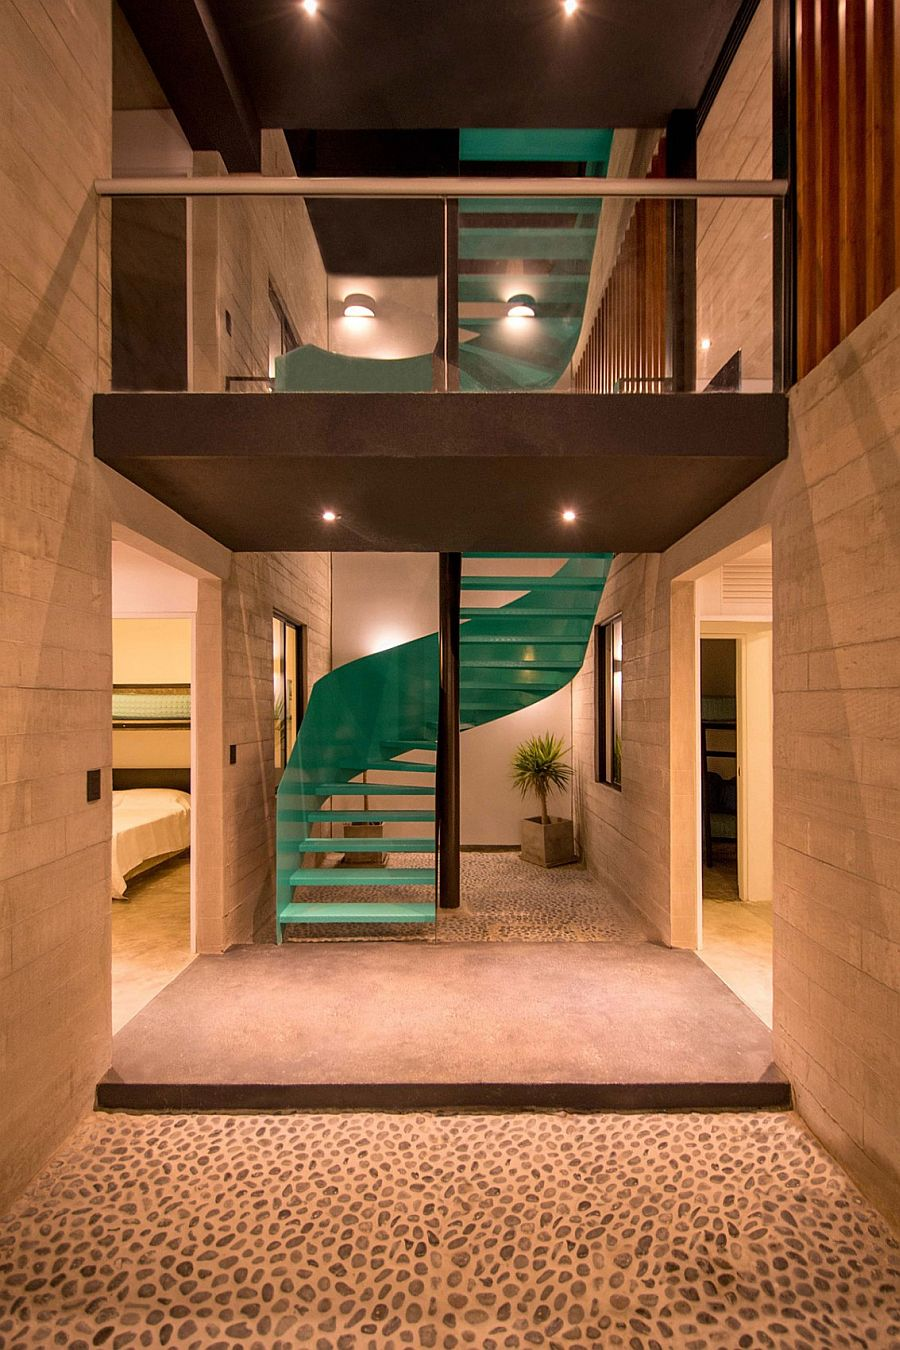 Ingenious staircase connects the various levels of the house